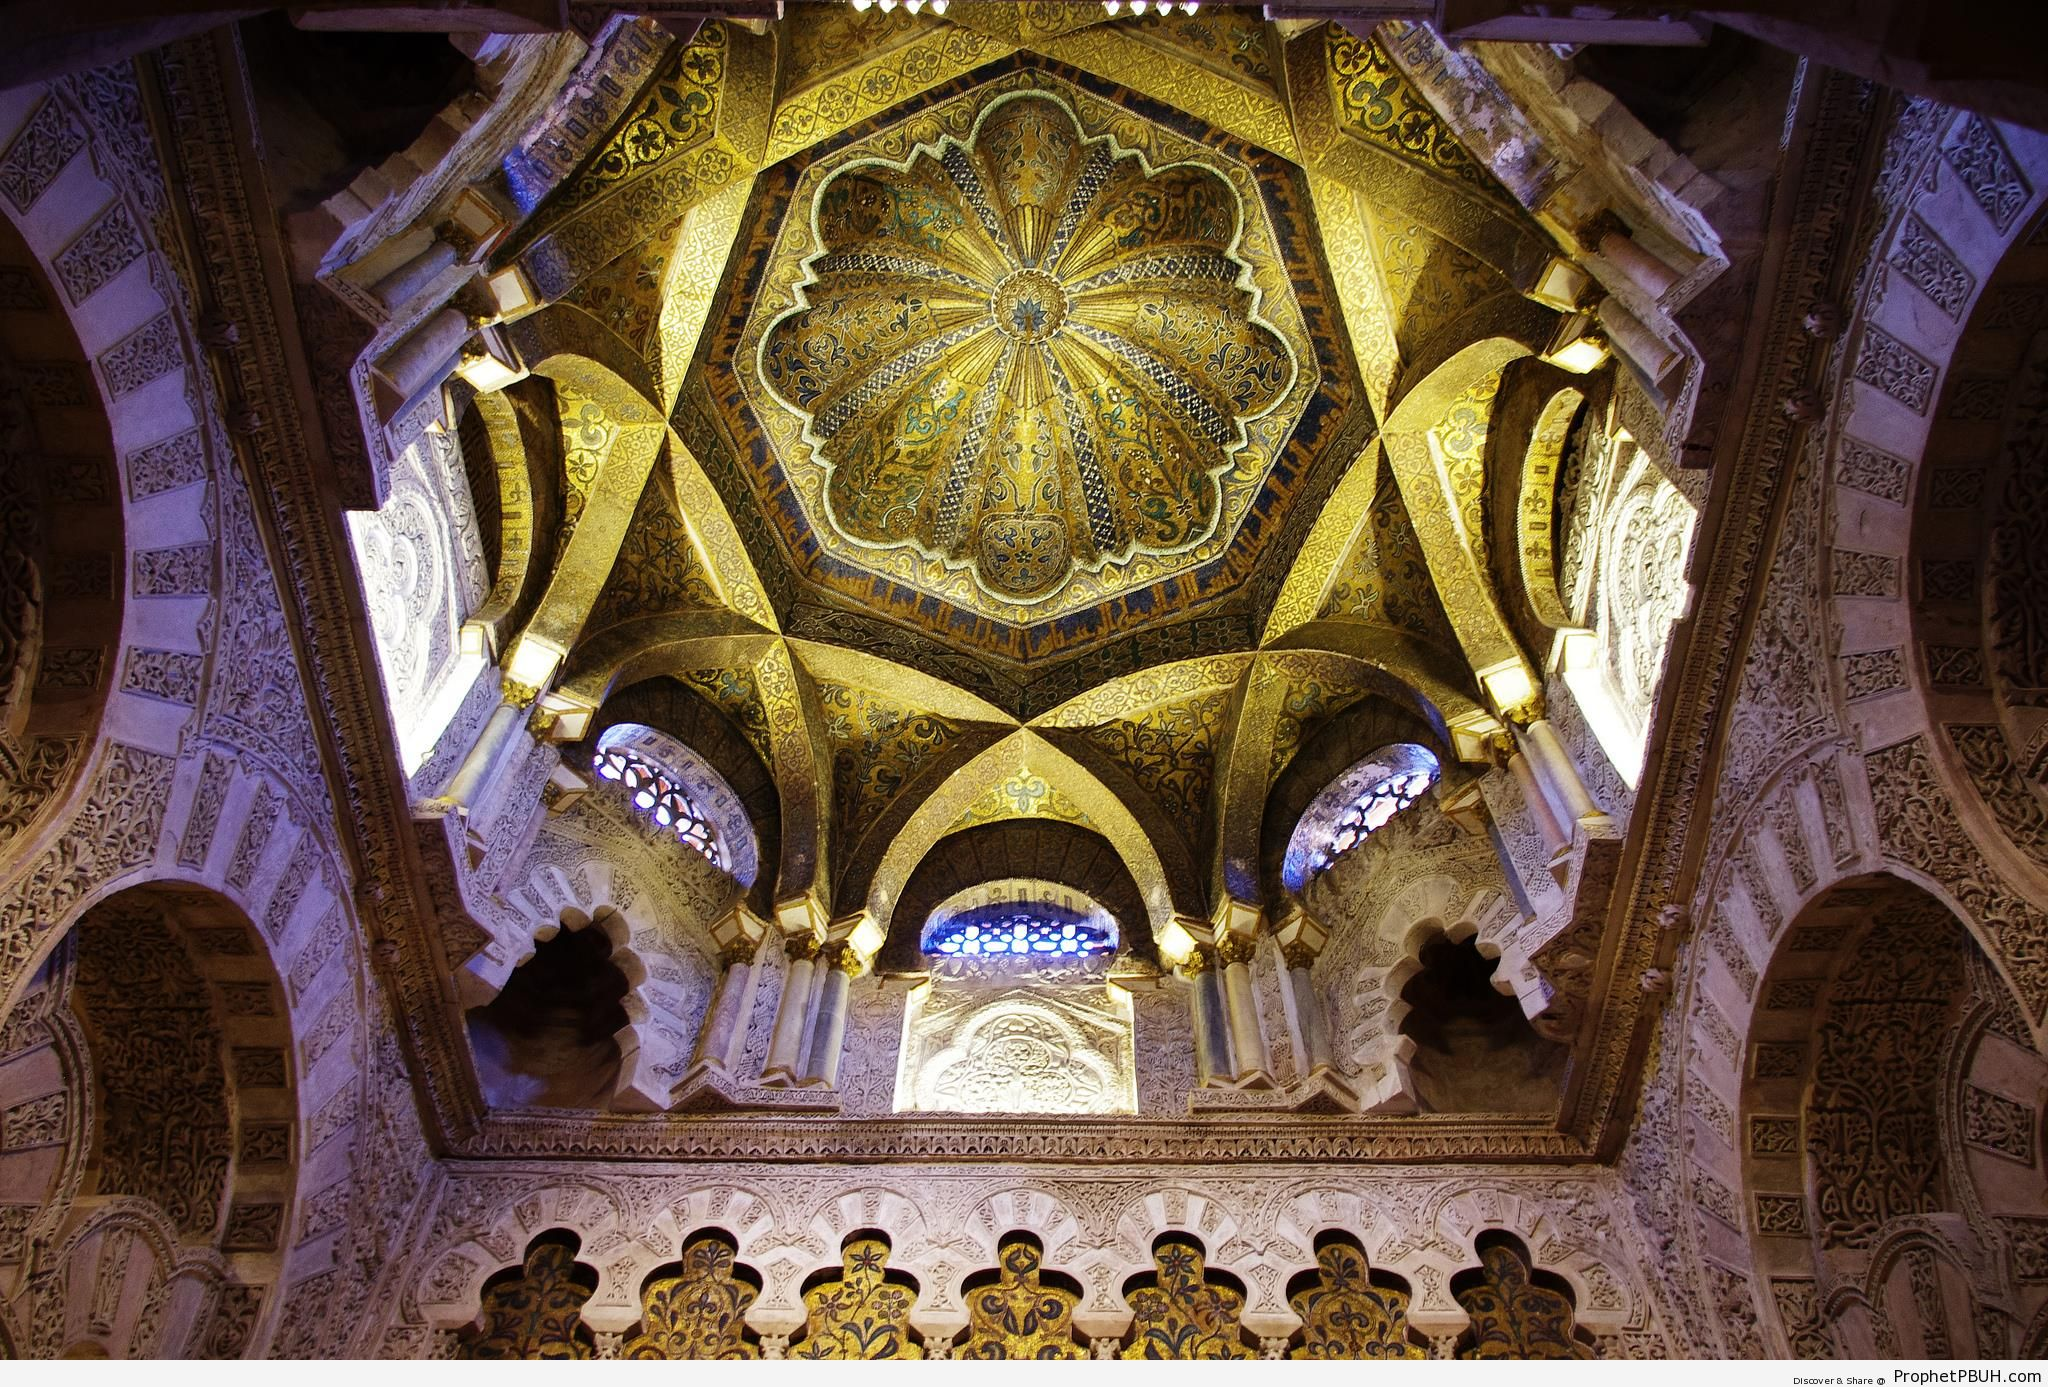 Ceiling of The Great Mosque of Córdoba (Qurtubah) in Andalusia, Spain - Andalusia, Spain -Picture